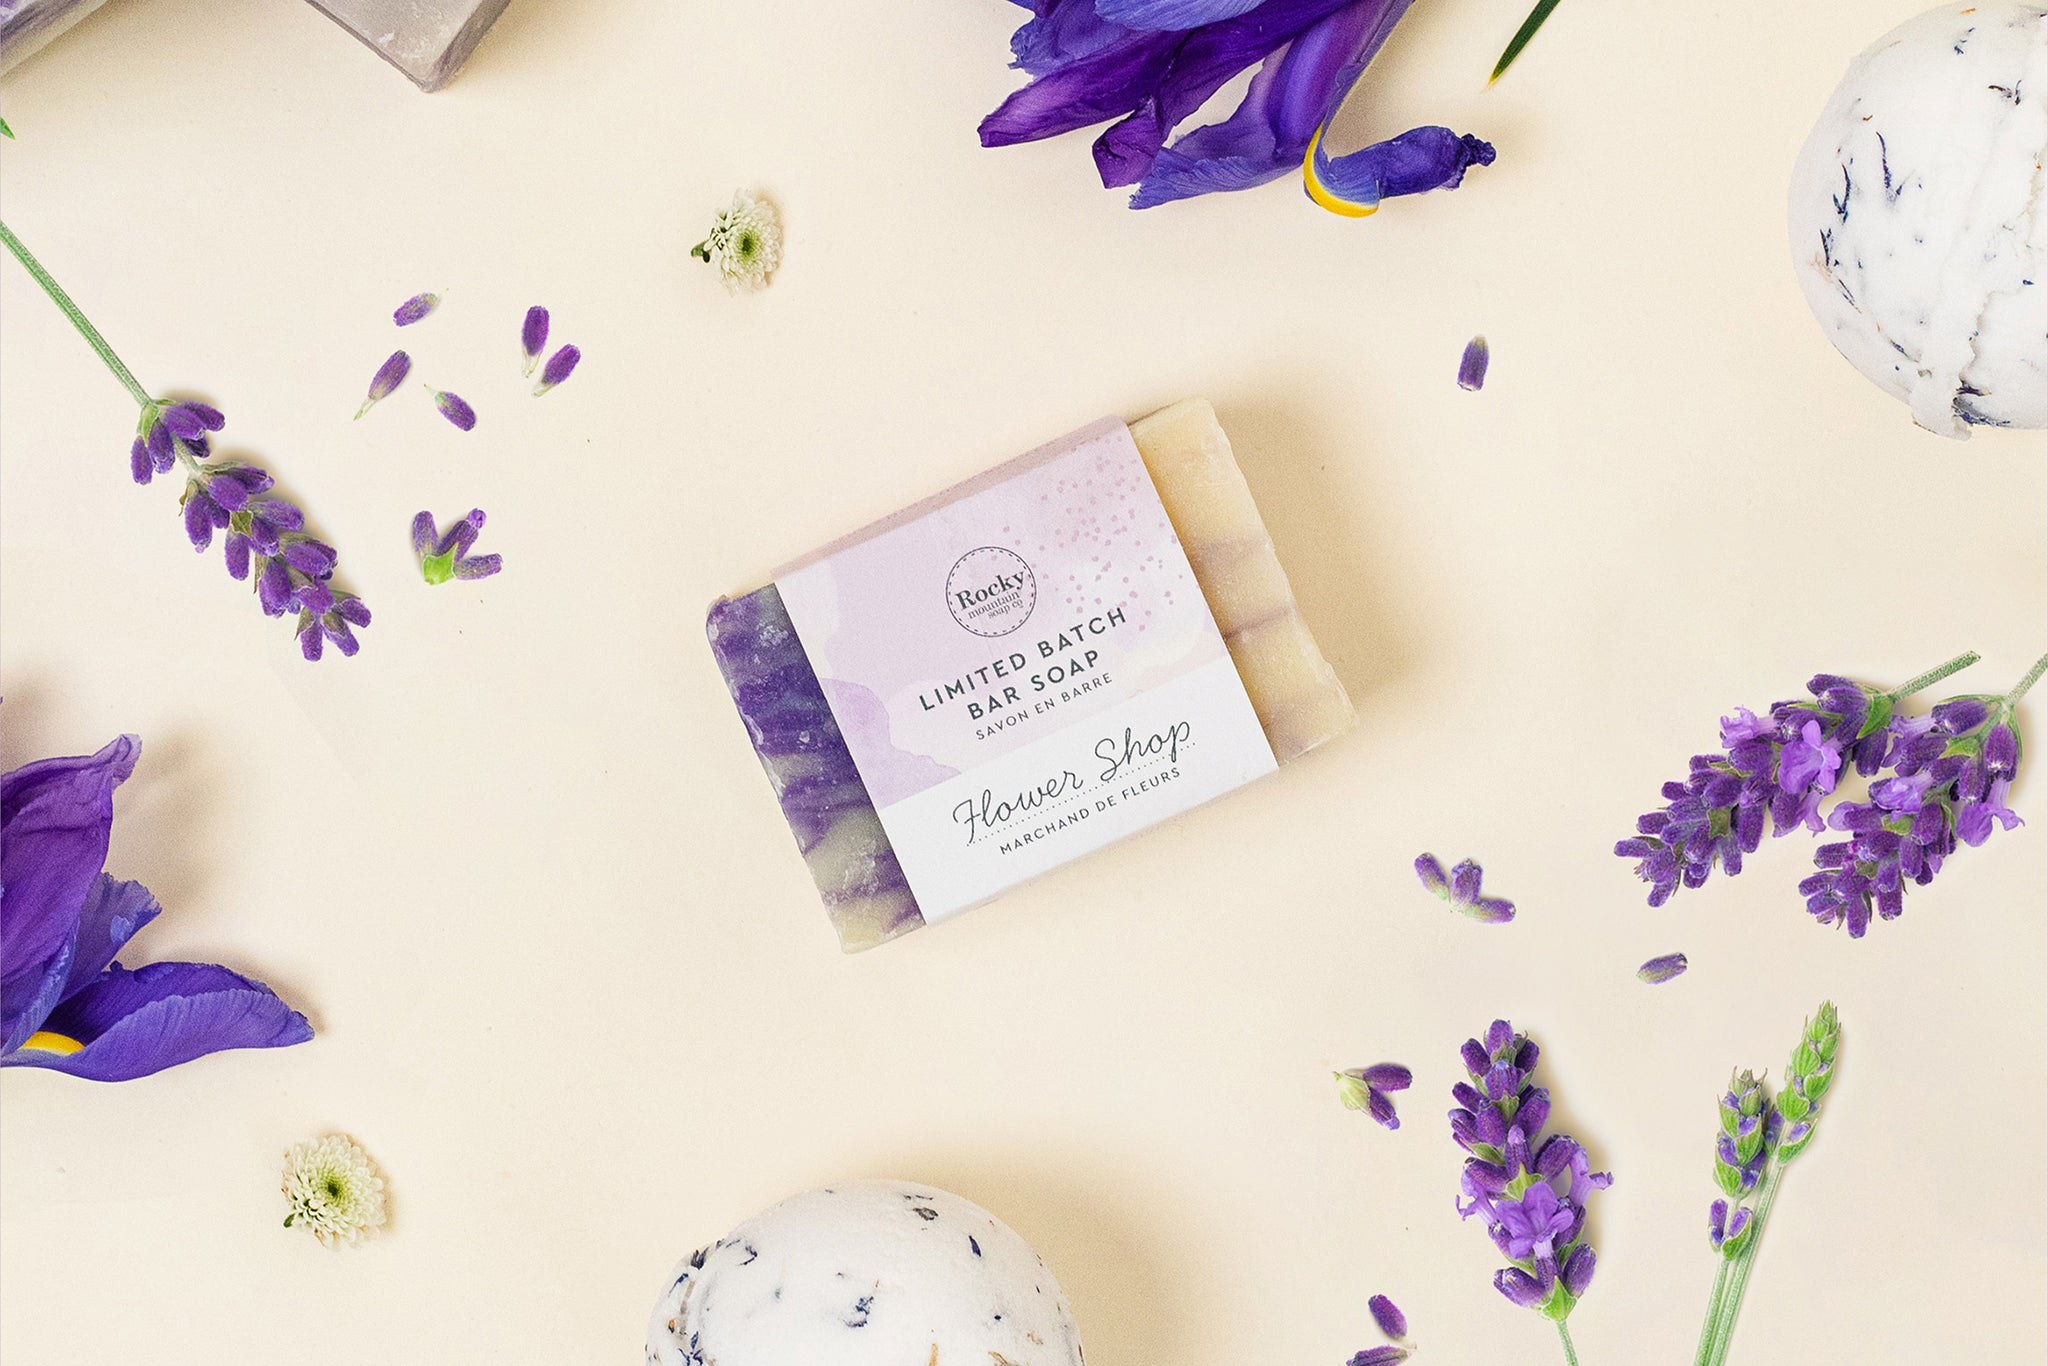 Image of natural soap bar Flower Show madein in Canada by Rocky Mountain soap Company,